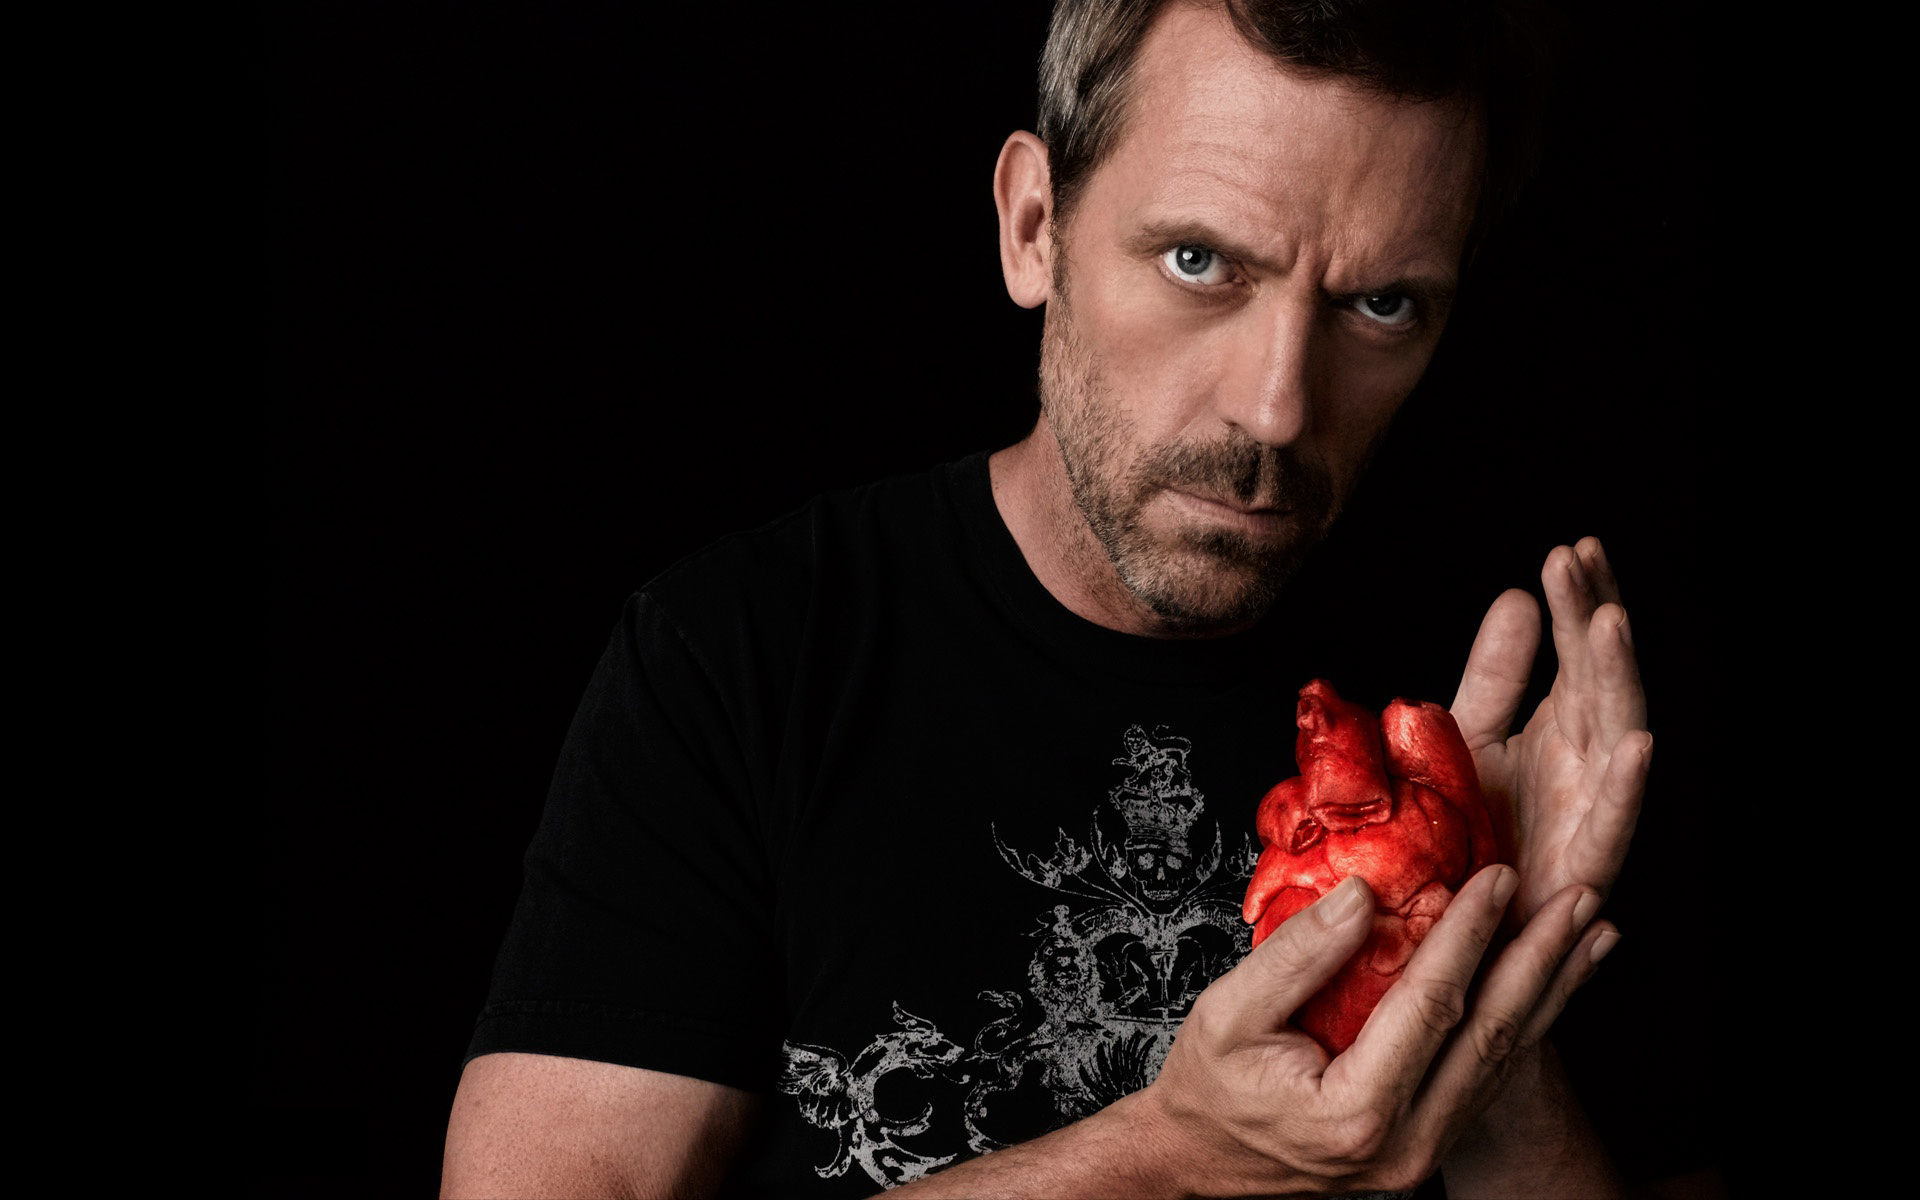 House Md Wallpapers Hd wallpaper   107996 1920x1200